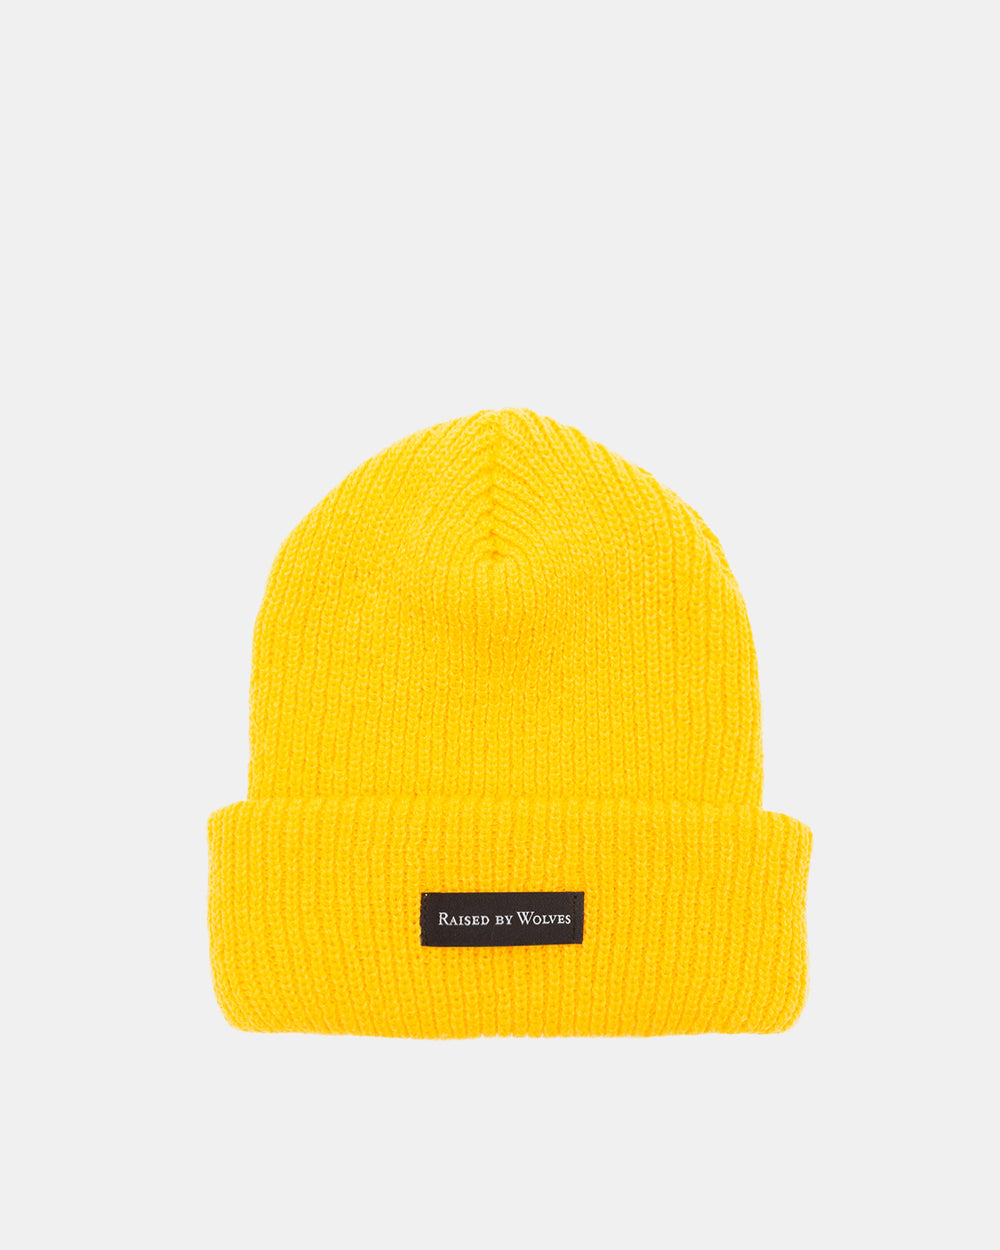 Raised by Wolves - Waffle Knit Watch Cap (Mustard)